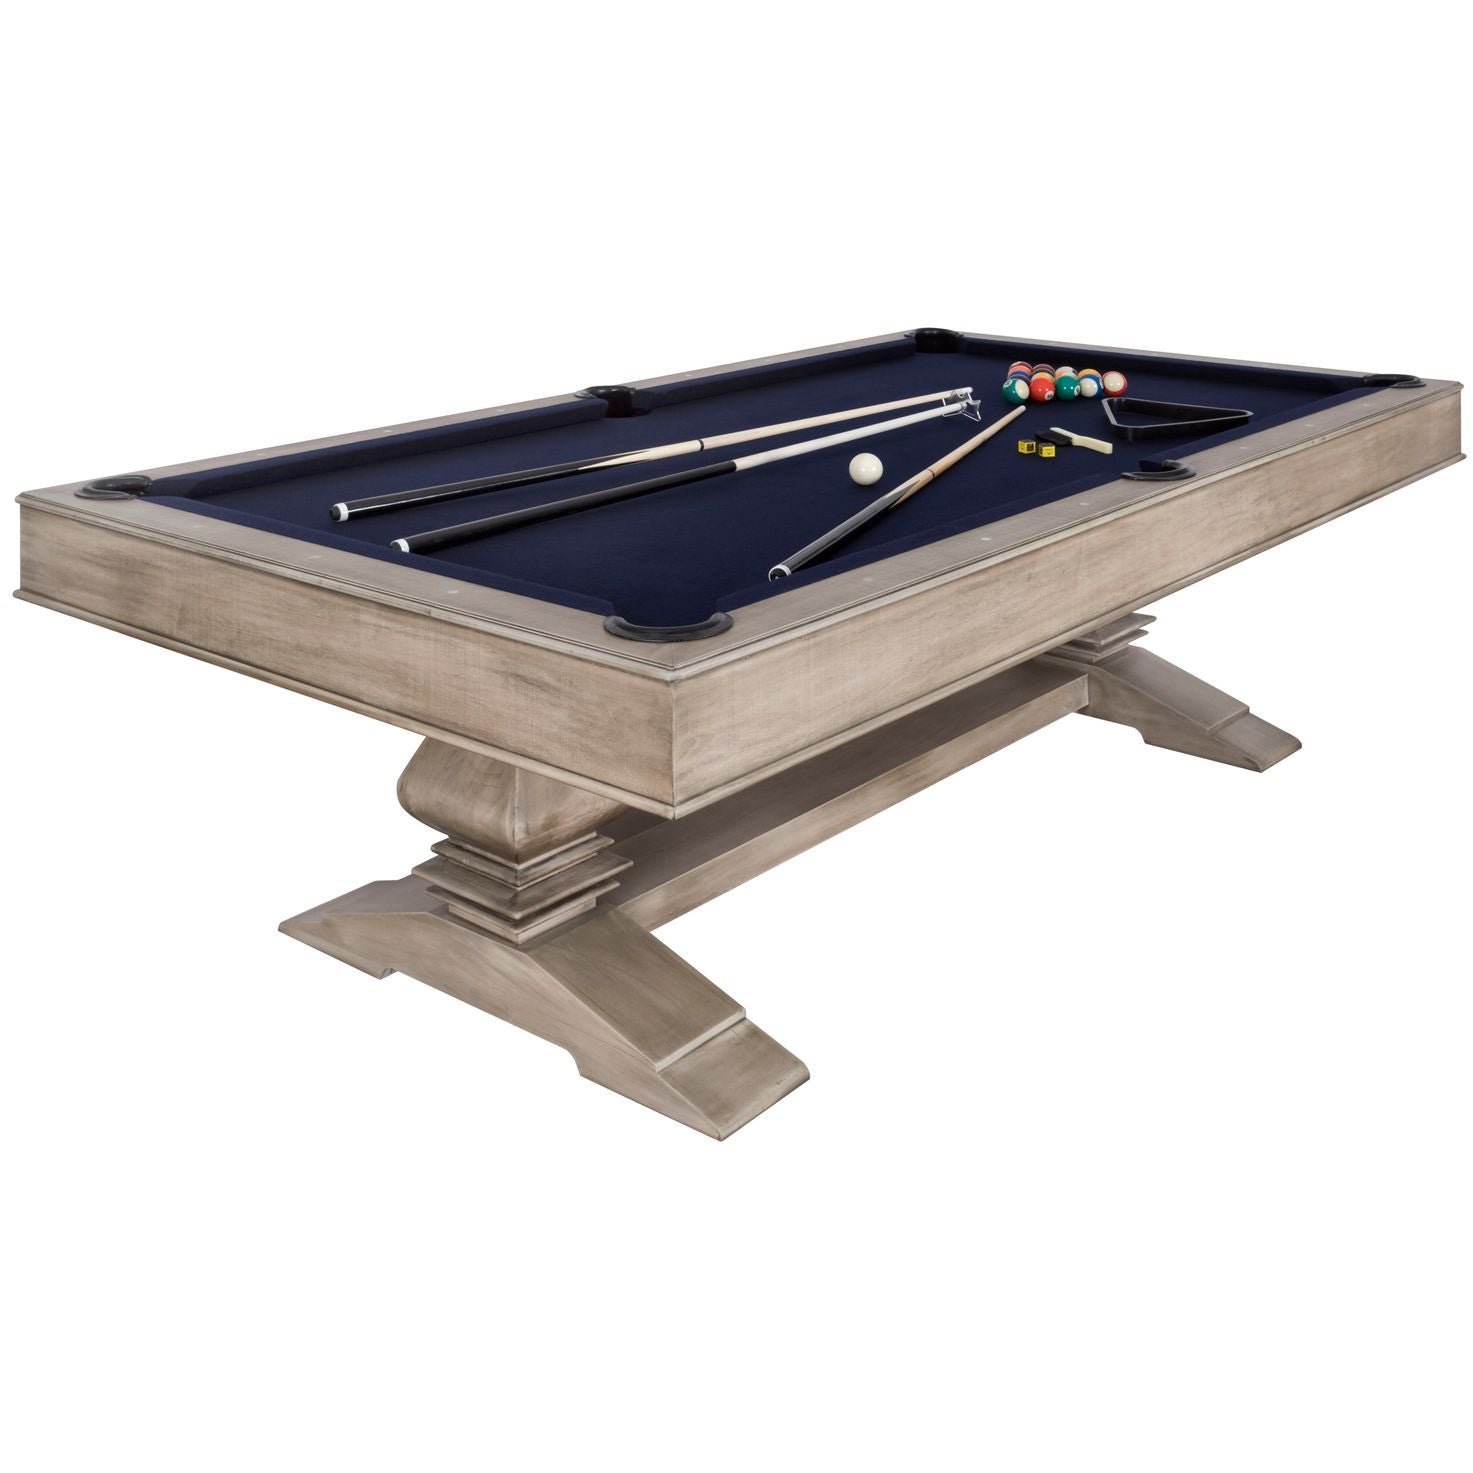 Hathaway Montecito 8ft Pool Table - Gaming Blaze